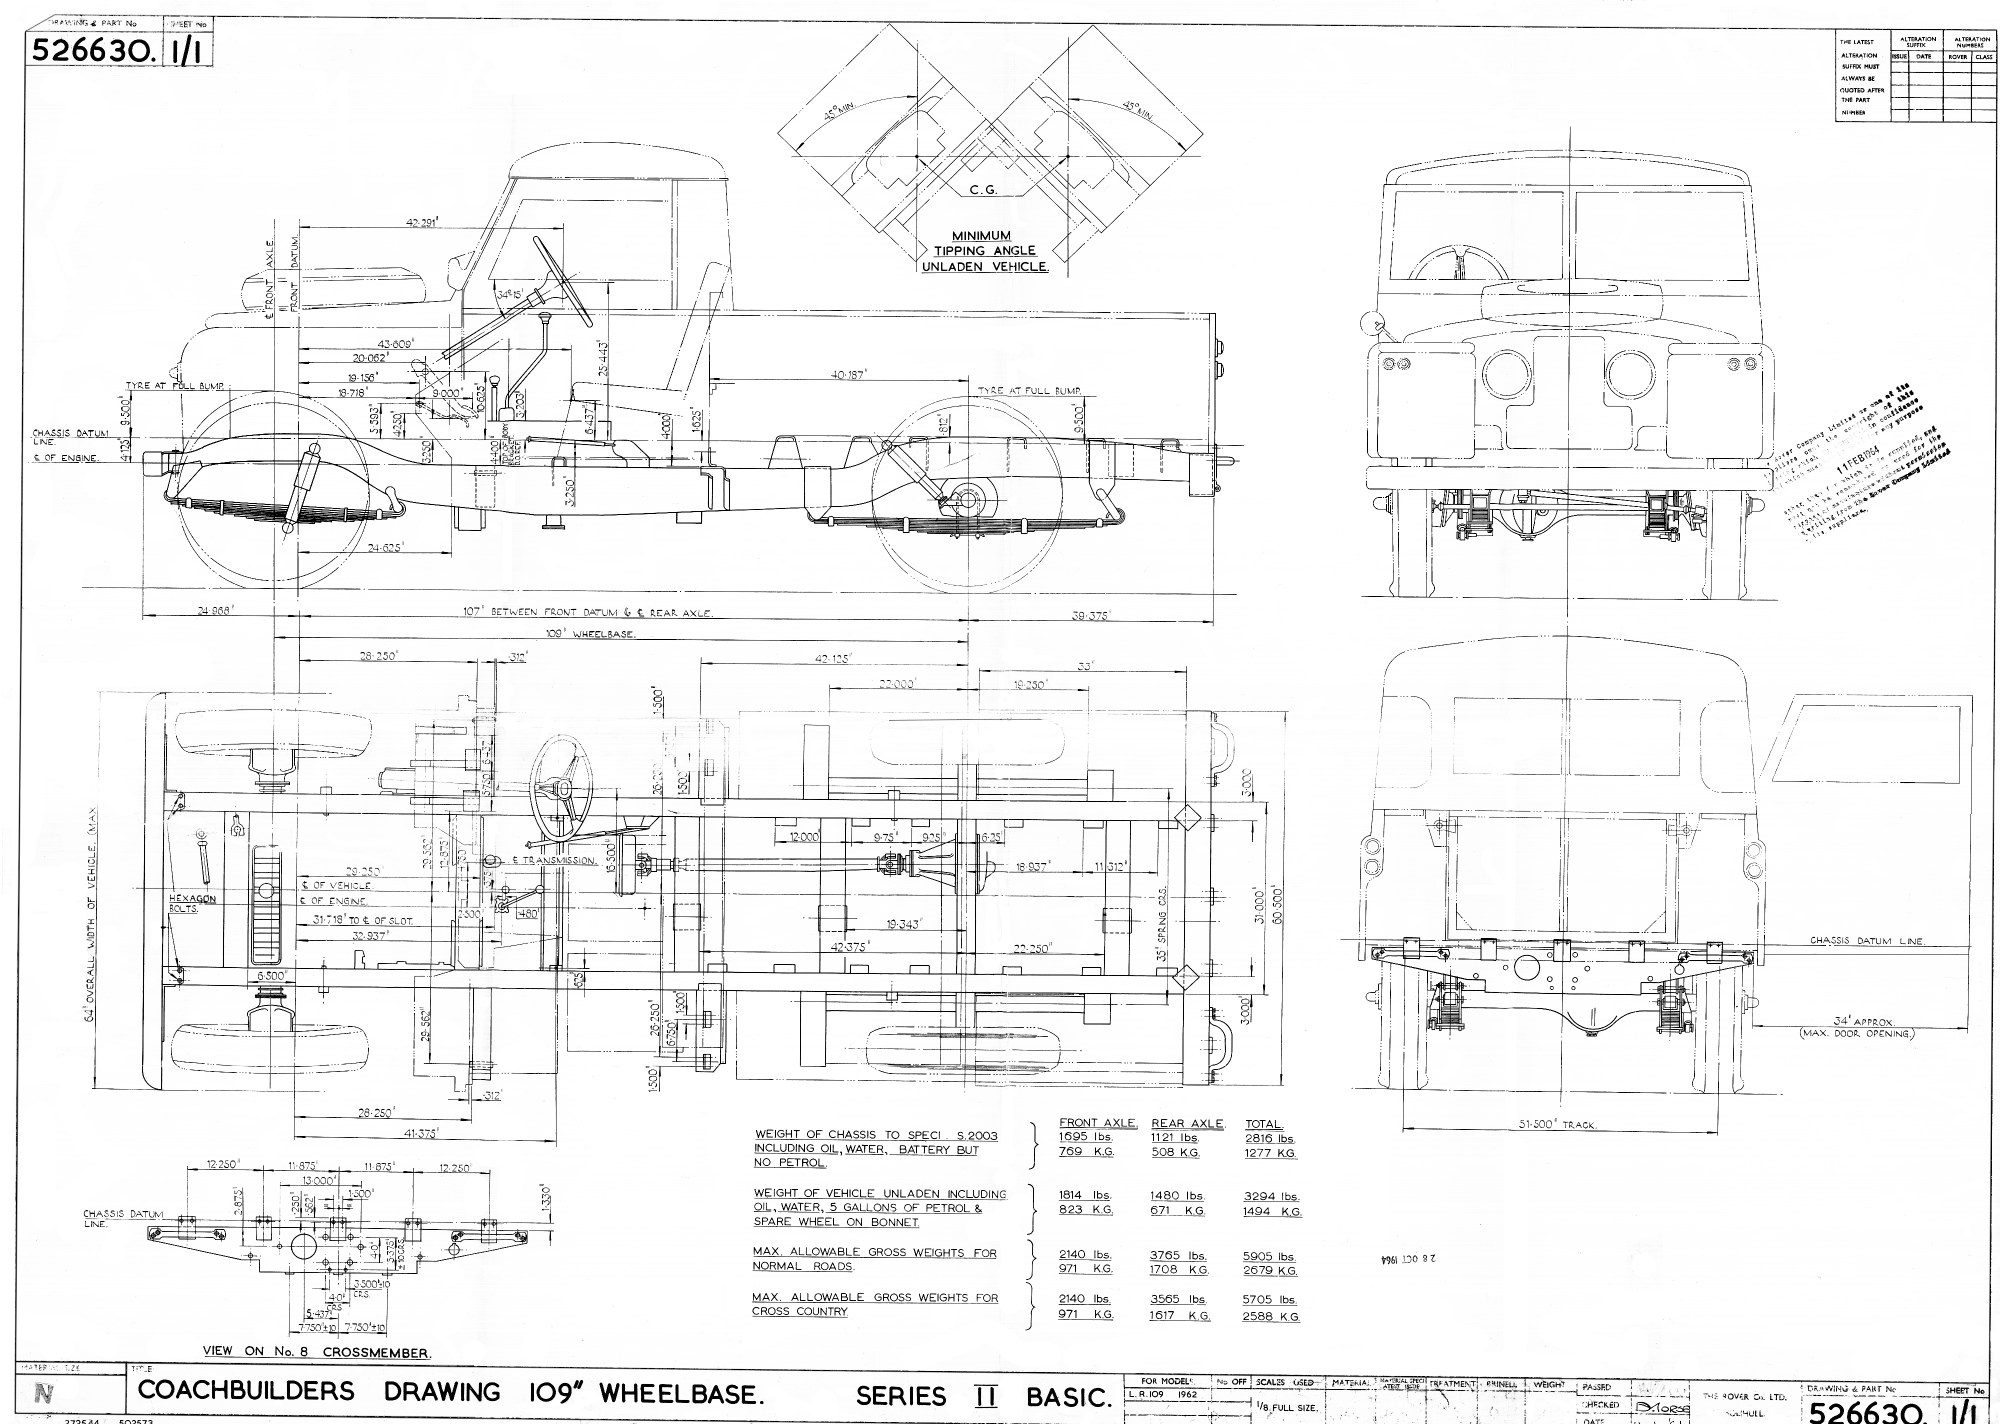 hight resolution of 1962 land rover 109 basic chassis coach builders drawing